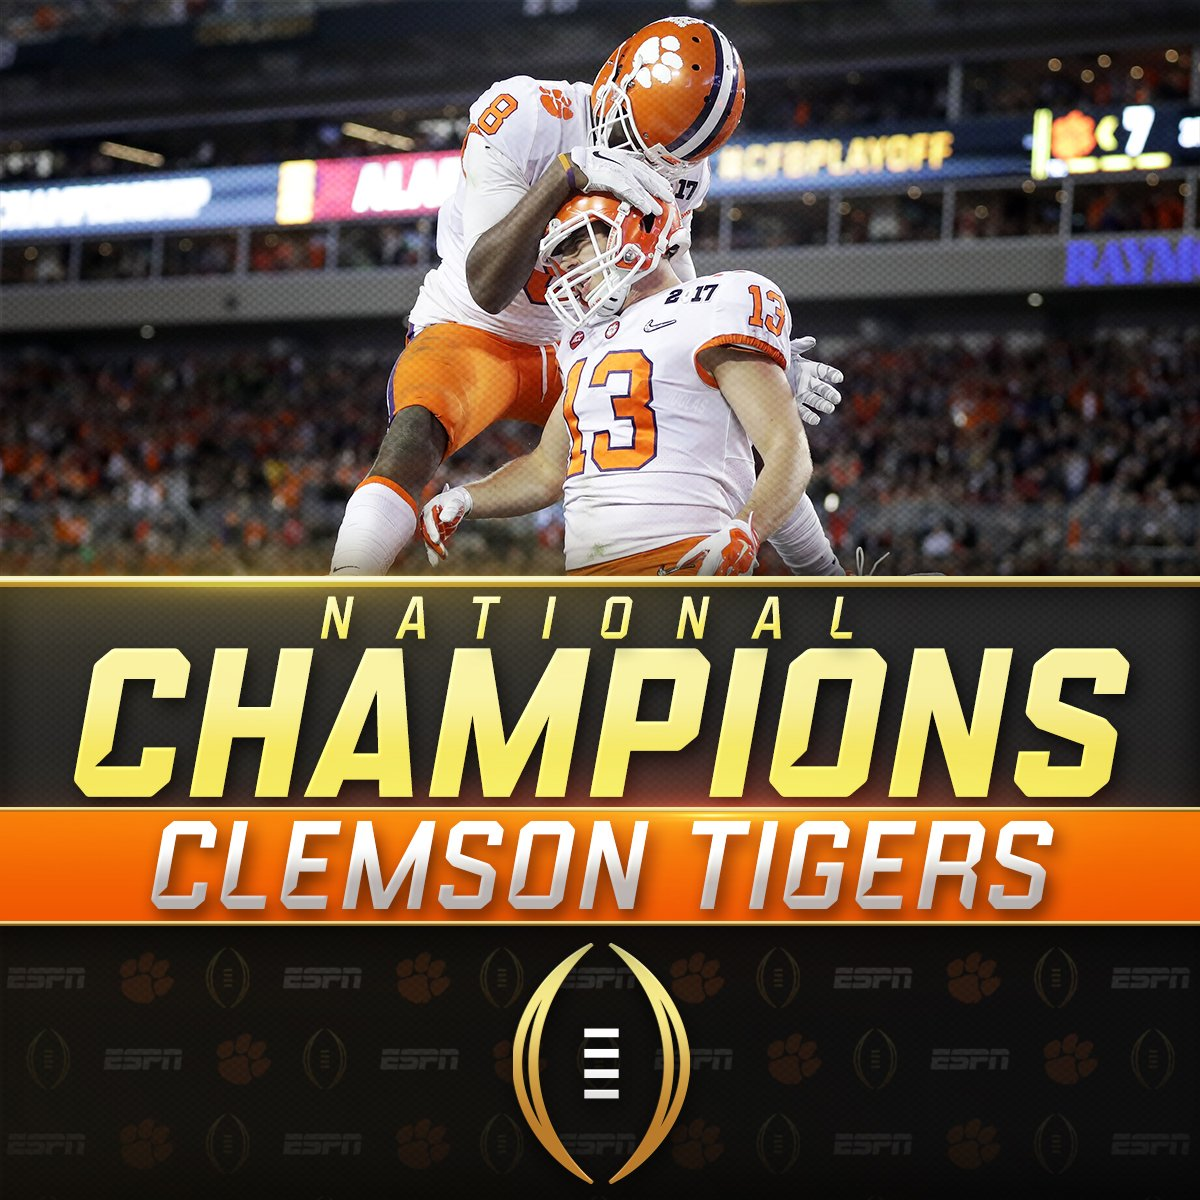 NATIONAL. CHAMPIONS.  Clemson takes down Alabama 35-31 to win its first #NationalChampionship since 1981! https://t.co/G95Crbdo9f